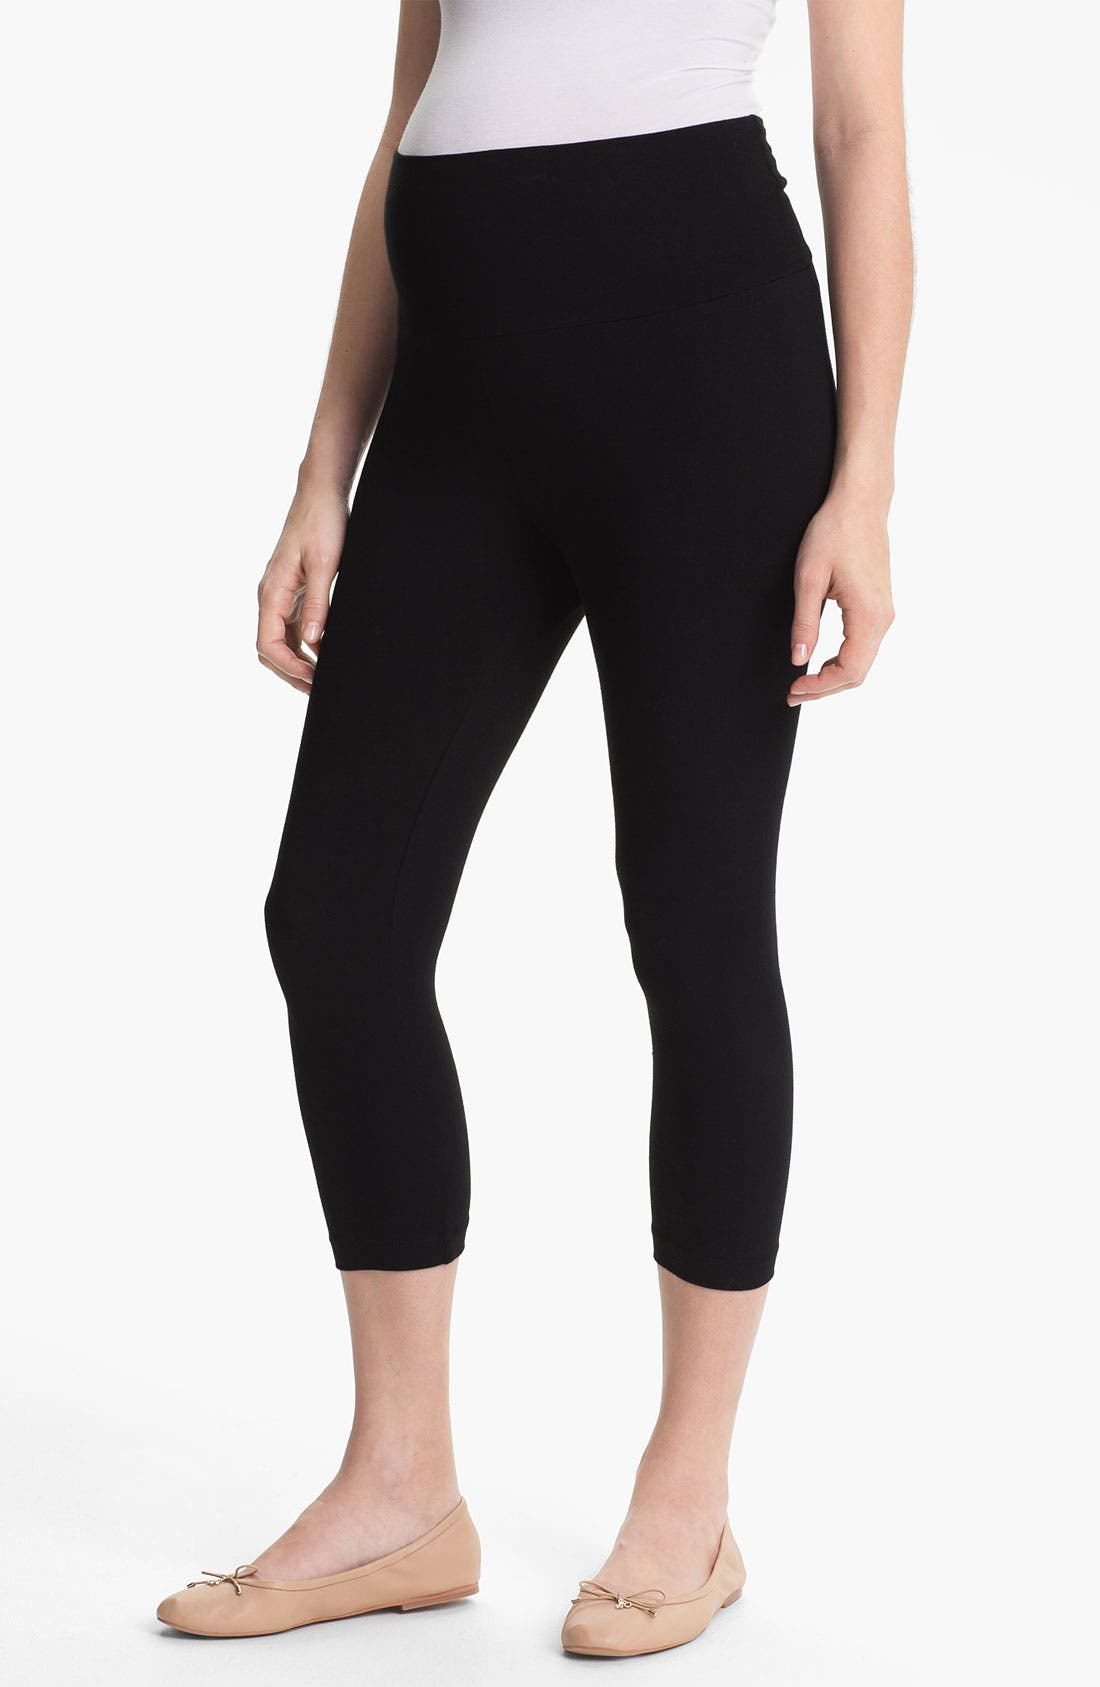 Alternate Image 1 Selected - Japanese Weekend Capri Maternity Leggings